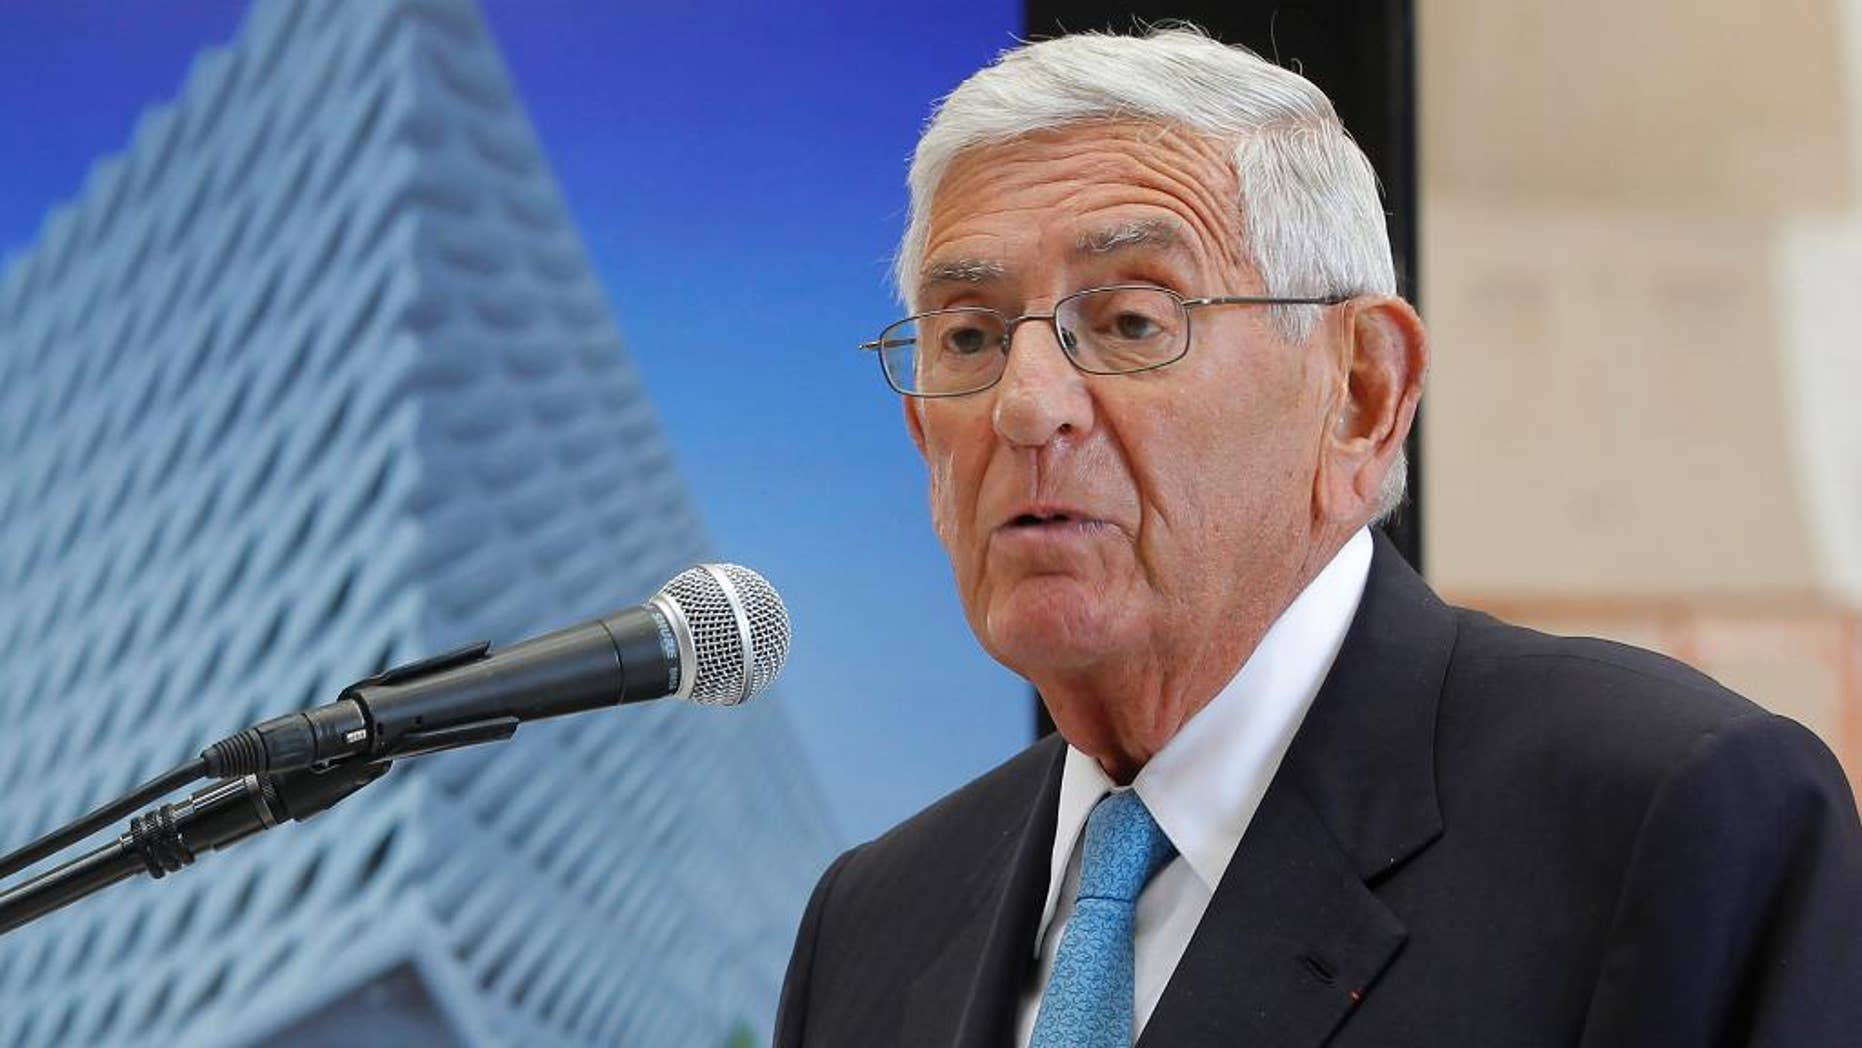 """FILE - In this Sept. 17, 2014 file photo, billionaire philanthropist Eli Broad speaks during a presentation of his half-completed museum, """"The Broad""""  in Los Angeles. A foundation started by Broad has suspended a national prize, Broad Prize for Urban Education, awarded annually to a top-performing urban school system. The $1 million prize was pulled amid concerns that the schools are failing to improve quickly enough. (AP Photo/Nick Ut,File)"""